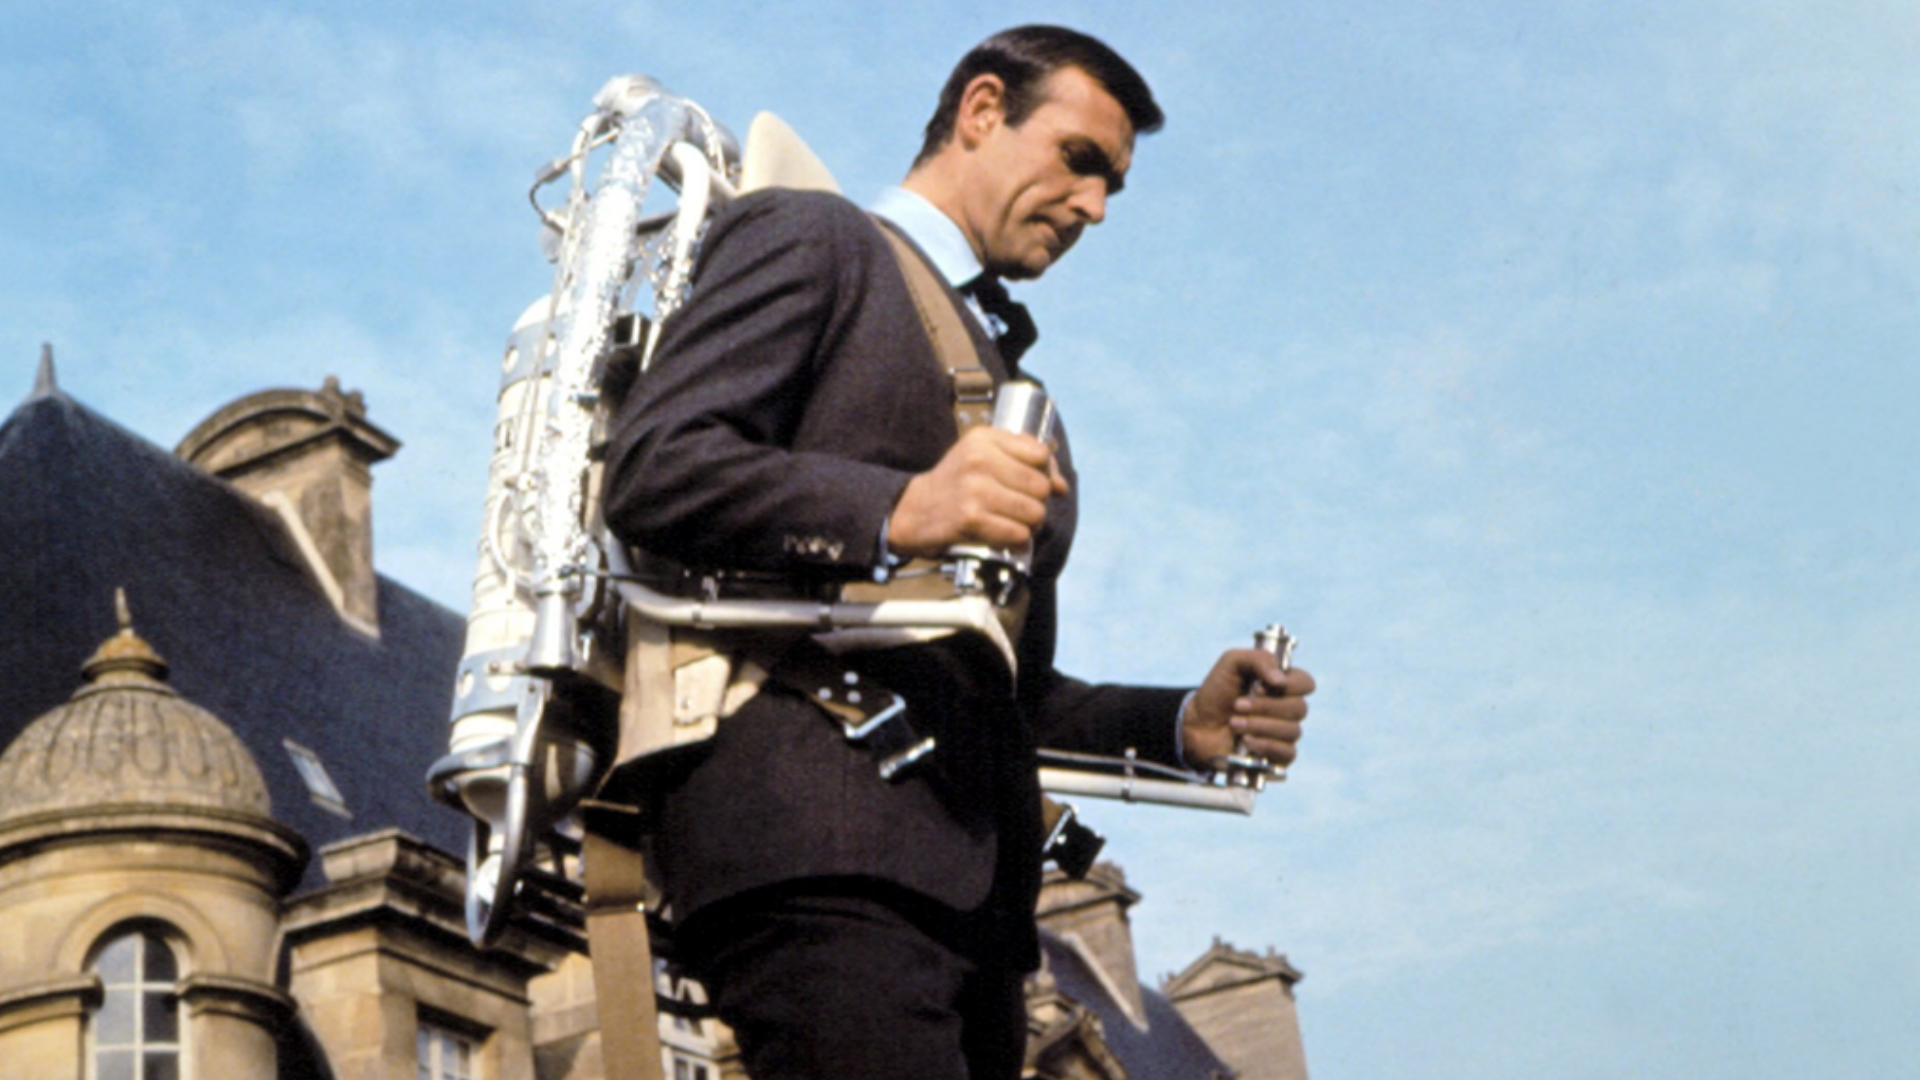 James Bond jetpack Thunderball